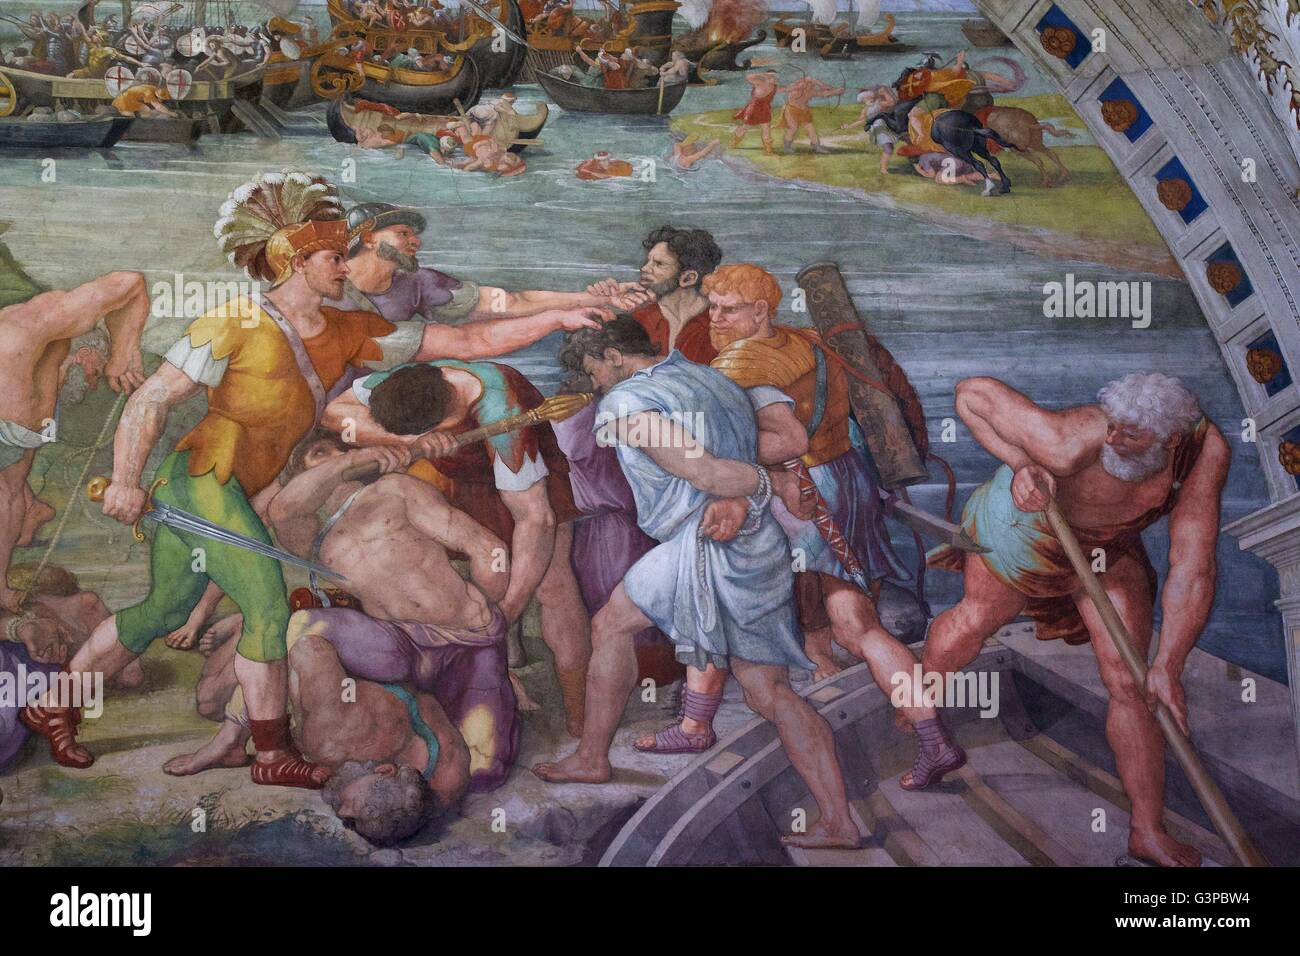 Detail of Battle of Ostia, Room of Fire in the Borgo, 1514-1515, Raphael Rooms, Apostolic Palace, Vatican Museums, - Stock Image